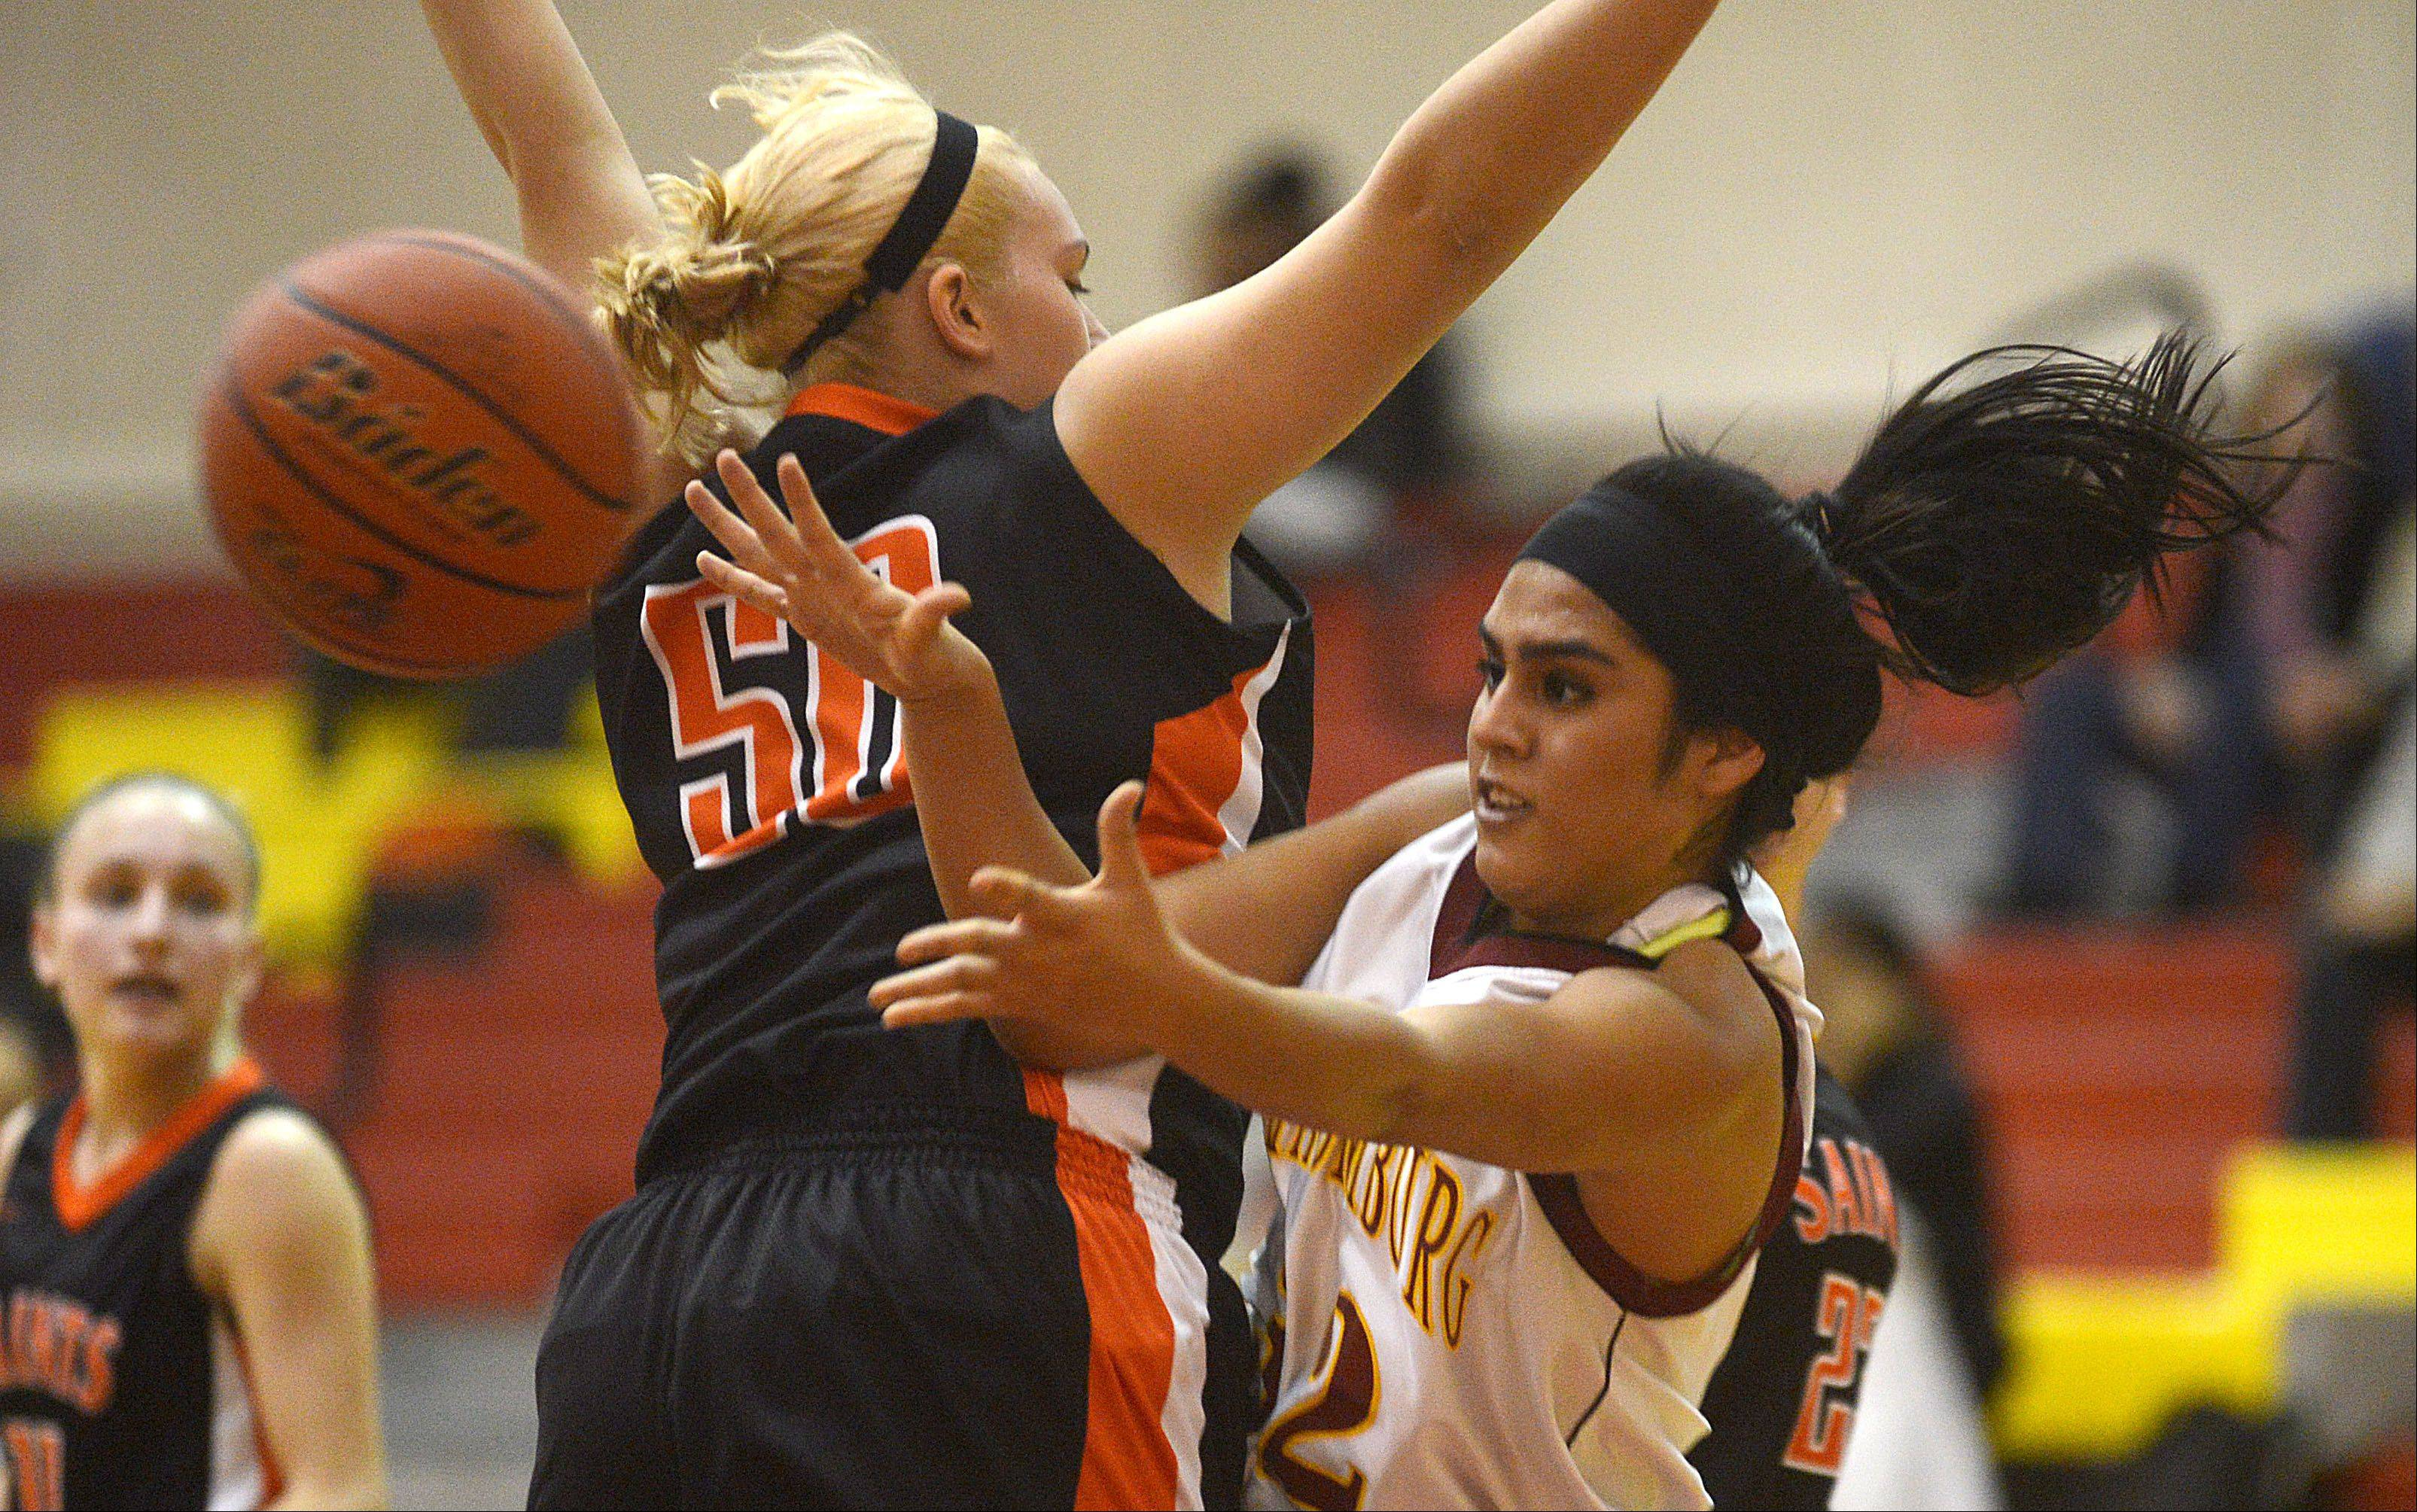 St. Charles East's Chloe John plays defense as Schaumburg's Lillian Chavarria, right, dishes the ball past during a varsity girls basketball game at Schaumburg High School on Monday evening.